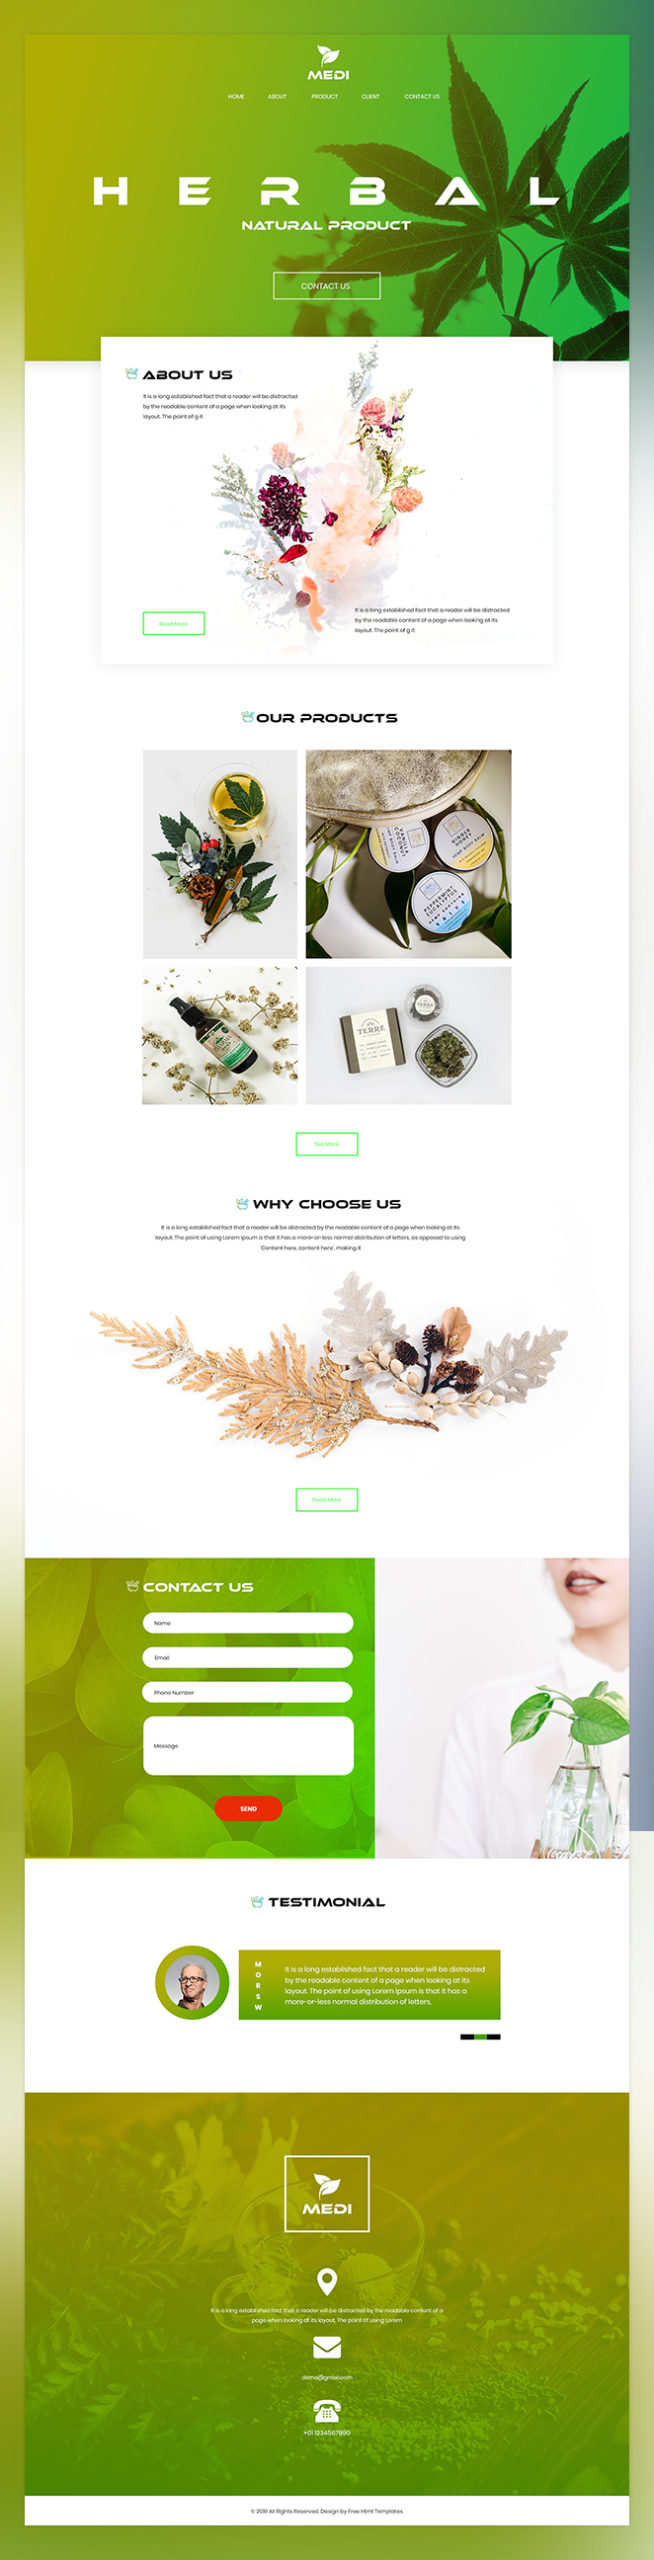 Medi herbal product psd template